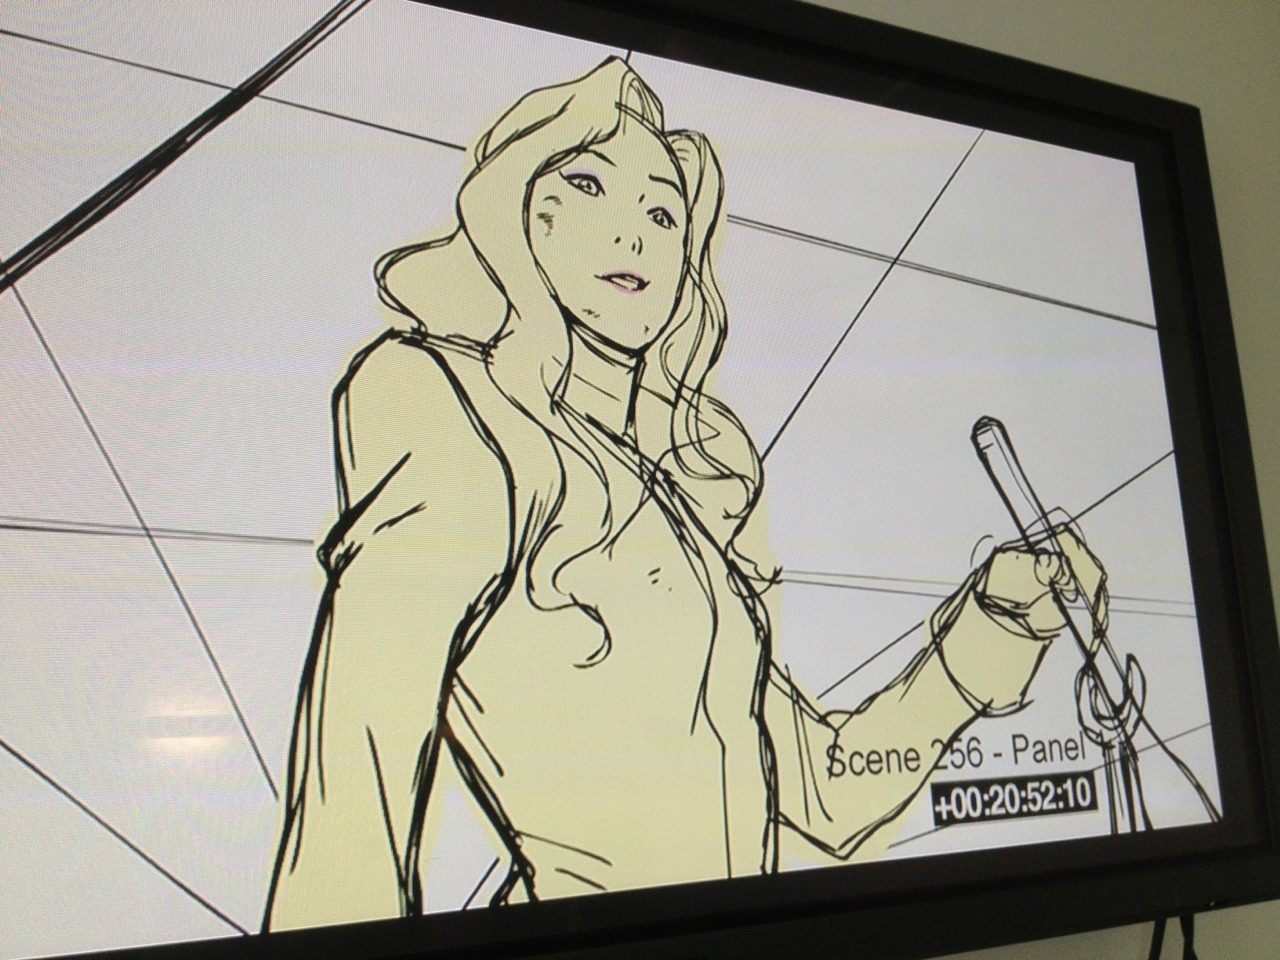 Awesome storyboard drawing of Asami by (awesome as usual) Ryu Ki Hyun from a Book 3 animatic.